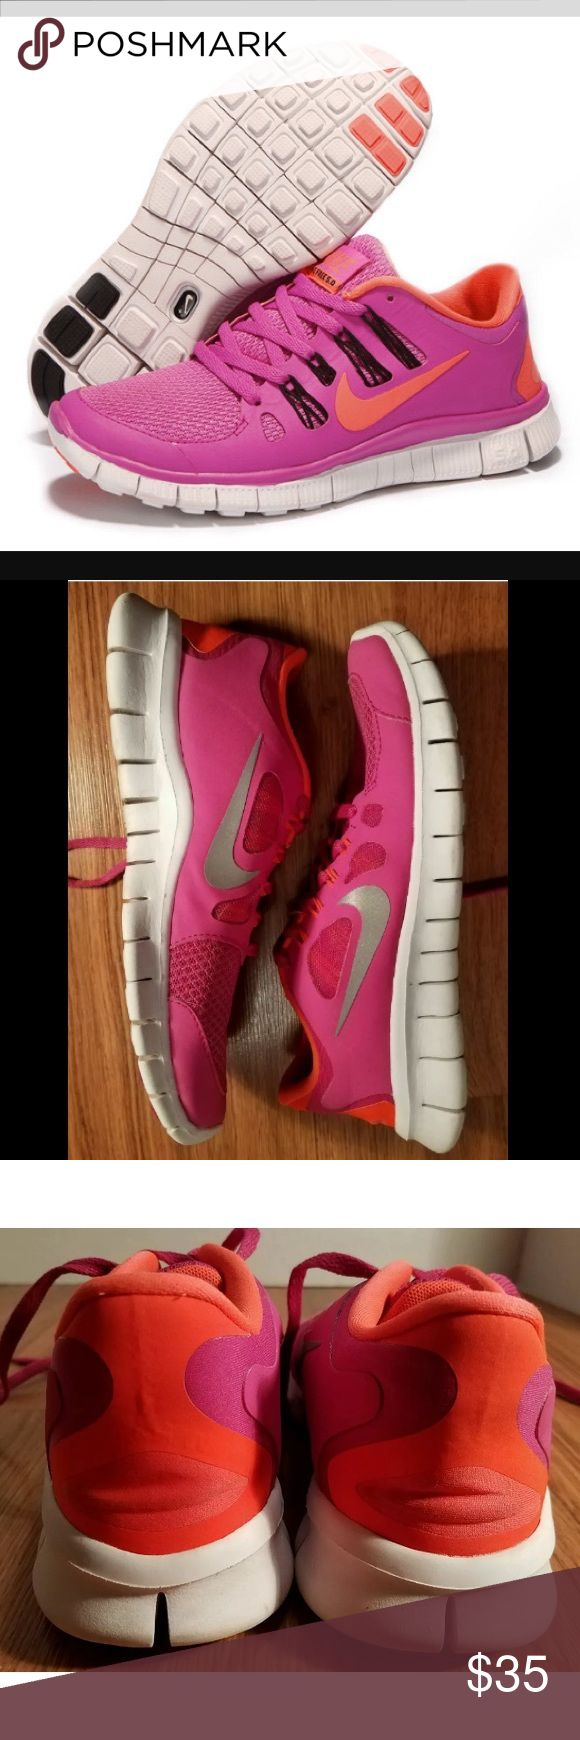 •PRICED TO SELL NOW•$148 NIKE FREE 5.0 RUNNER SHOE $148.00 PLUS TAX RETAIL MUST HAVE NIKE FREE 5.0 RUNNING SHOES YOUTH SIZE 6.5 CONVERTS TO SIZE 10 WOMENS (sole measures 10.5 inches long) SEE SIZE CHART PRIOR TO PURCHASE. NO BOX BECAUSE I COLLECT THEM, PURCHASED IN STORE. WORN UNDER 10x SEE PICTURES FOR WEAR, GREAT CONDITION SUPER COMFY. •••PRICED TO SELL SAME DAY, OFFERS WELCOME THROUGH THE OFFER OPTION, NO TRADES OR HOLDS••• Nike Shoes Sneakers